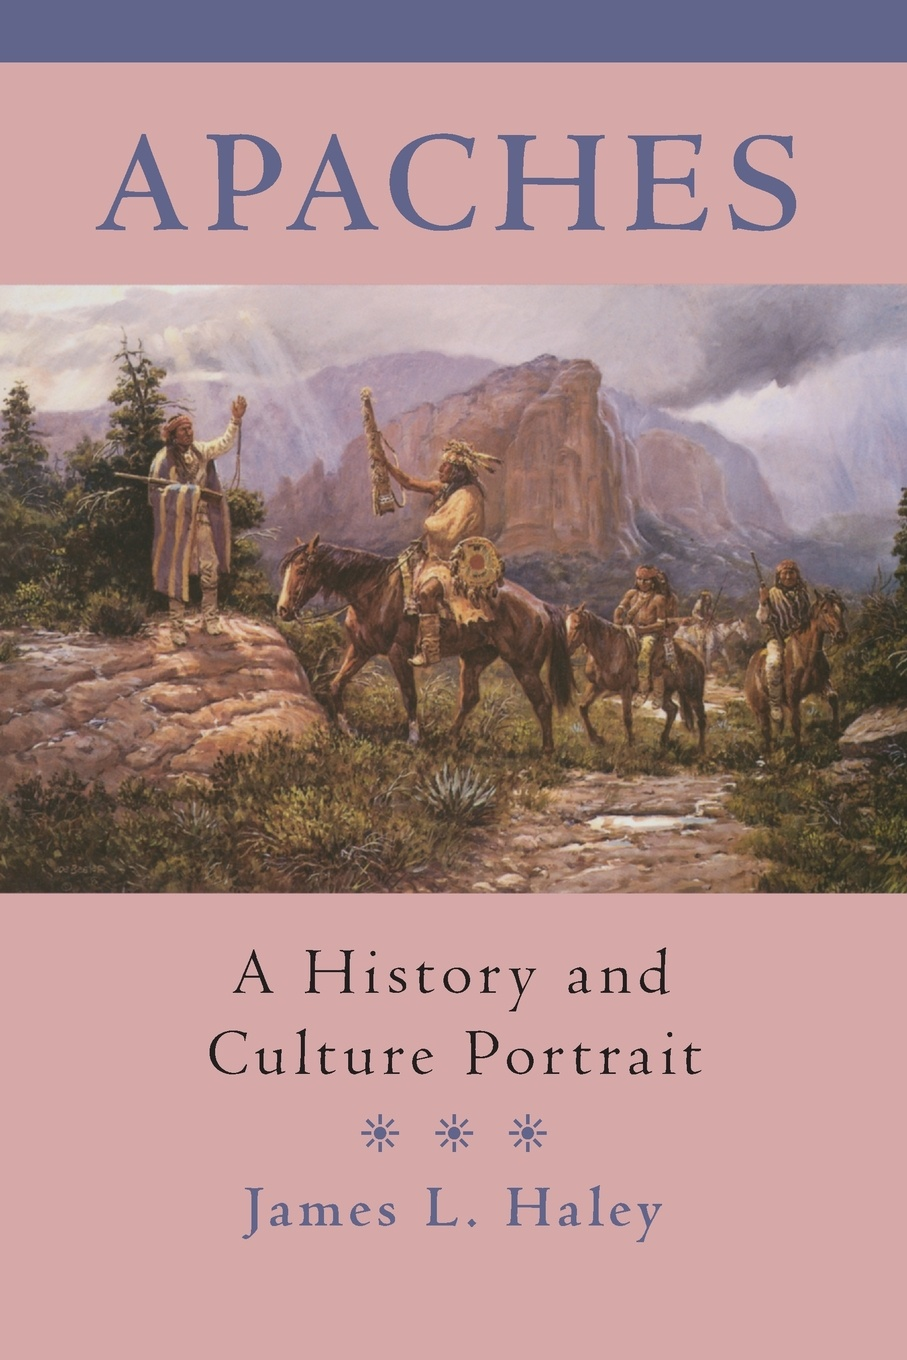 James L. Haley The Apaches. A History and Culture Portrait